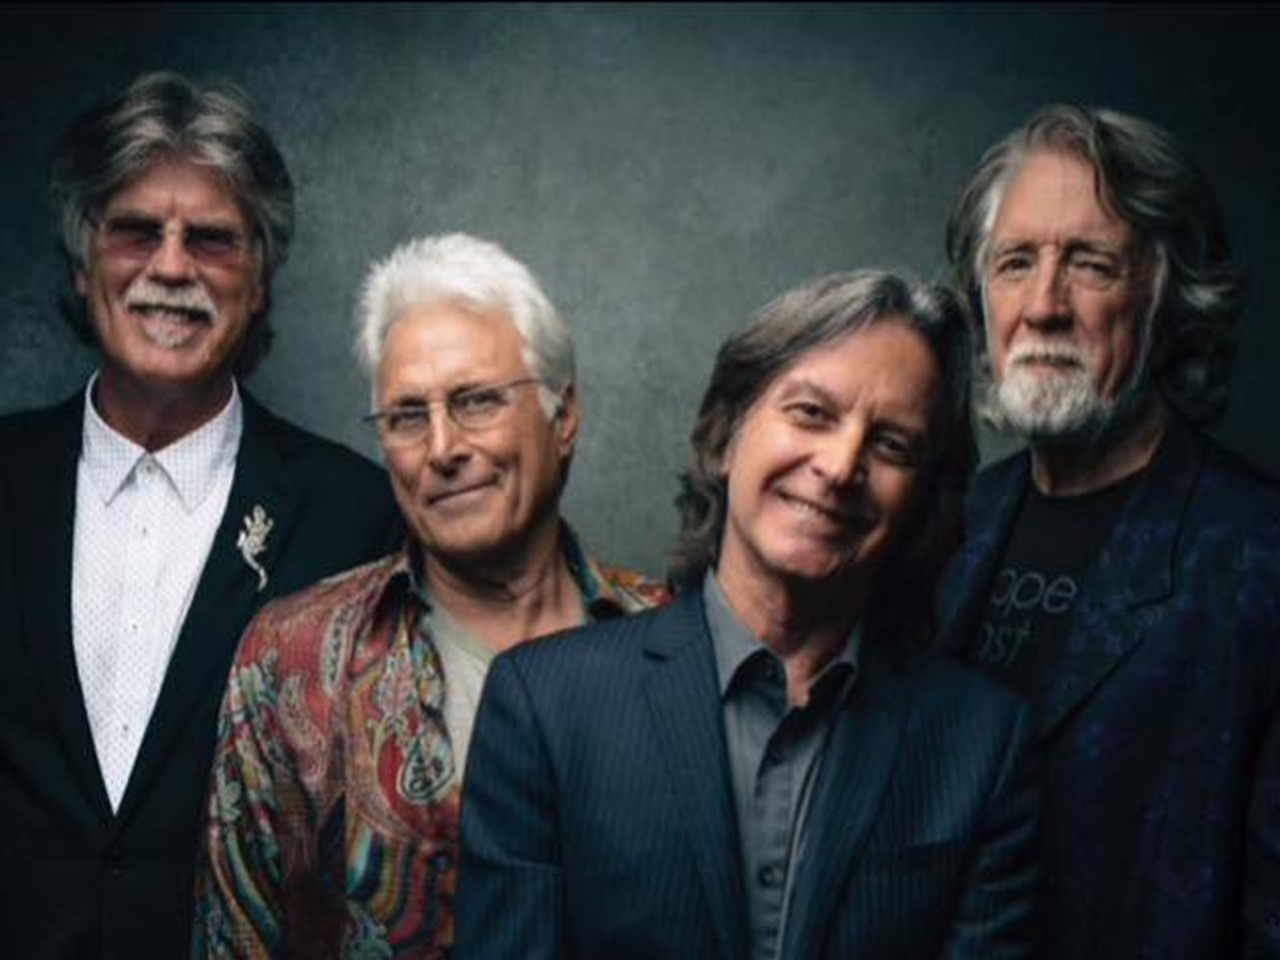 Nitty Gritty Dirt Band to Drop Greatest Hits Album Spanning 5 Decades